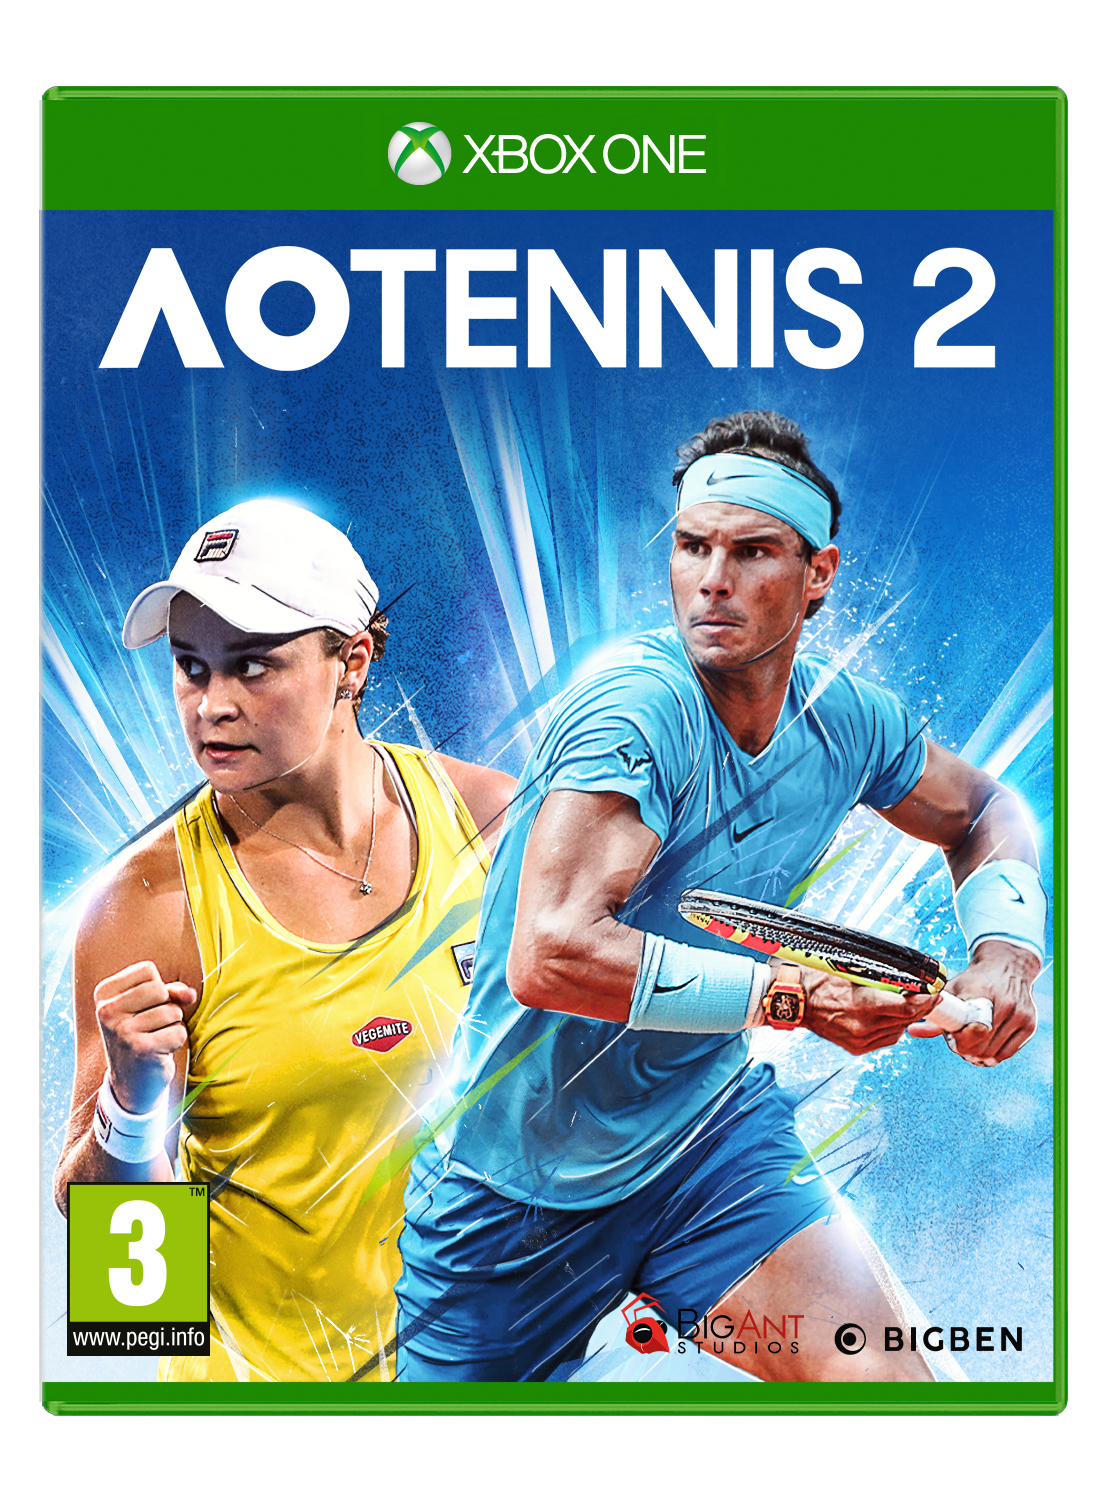 Big Ben Interactive Bigben Interactive AO Tennis 2 - Xb1aotennis2it